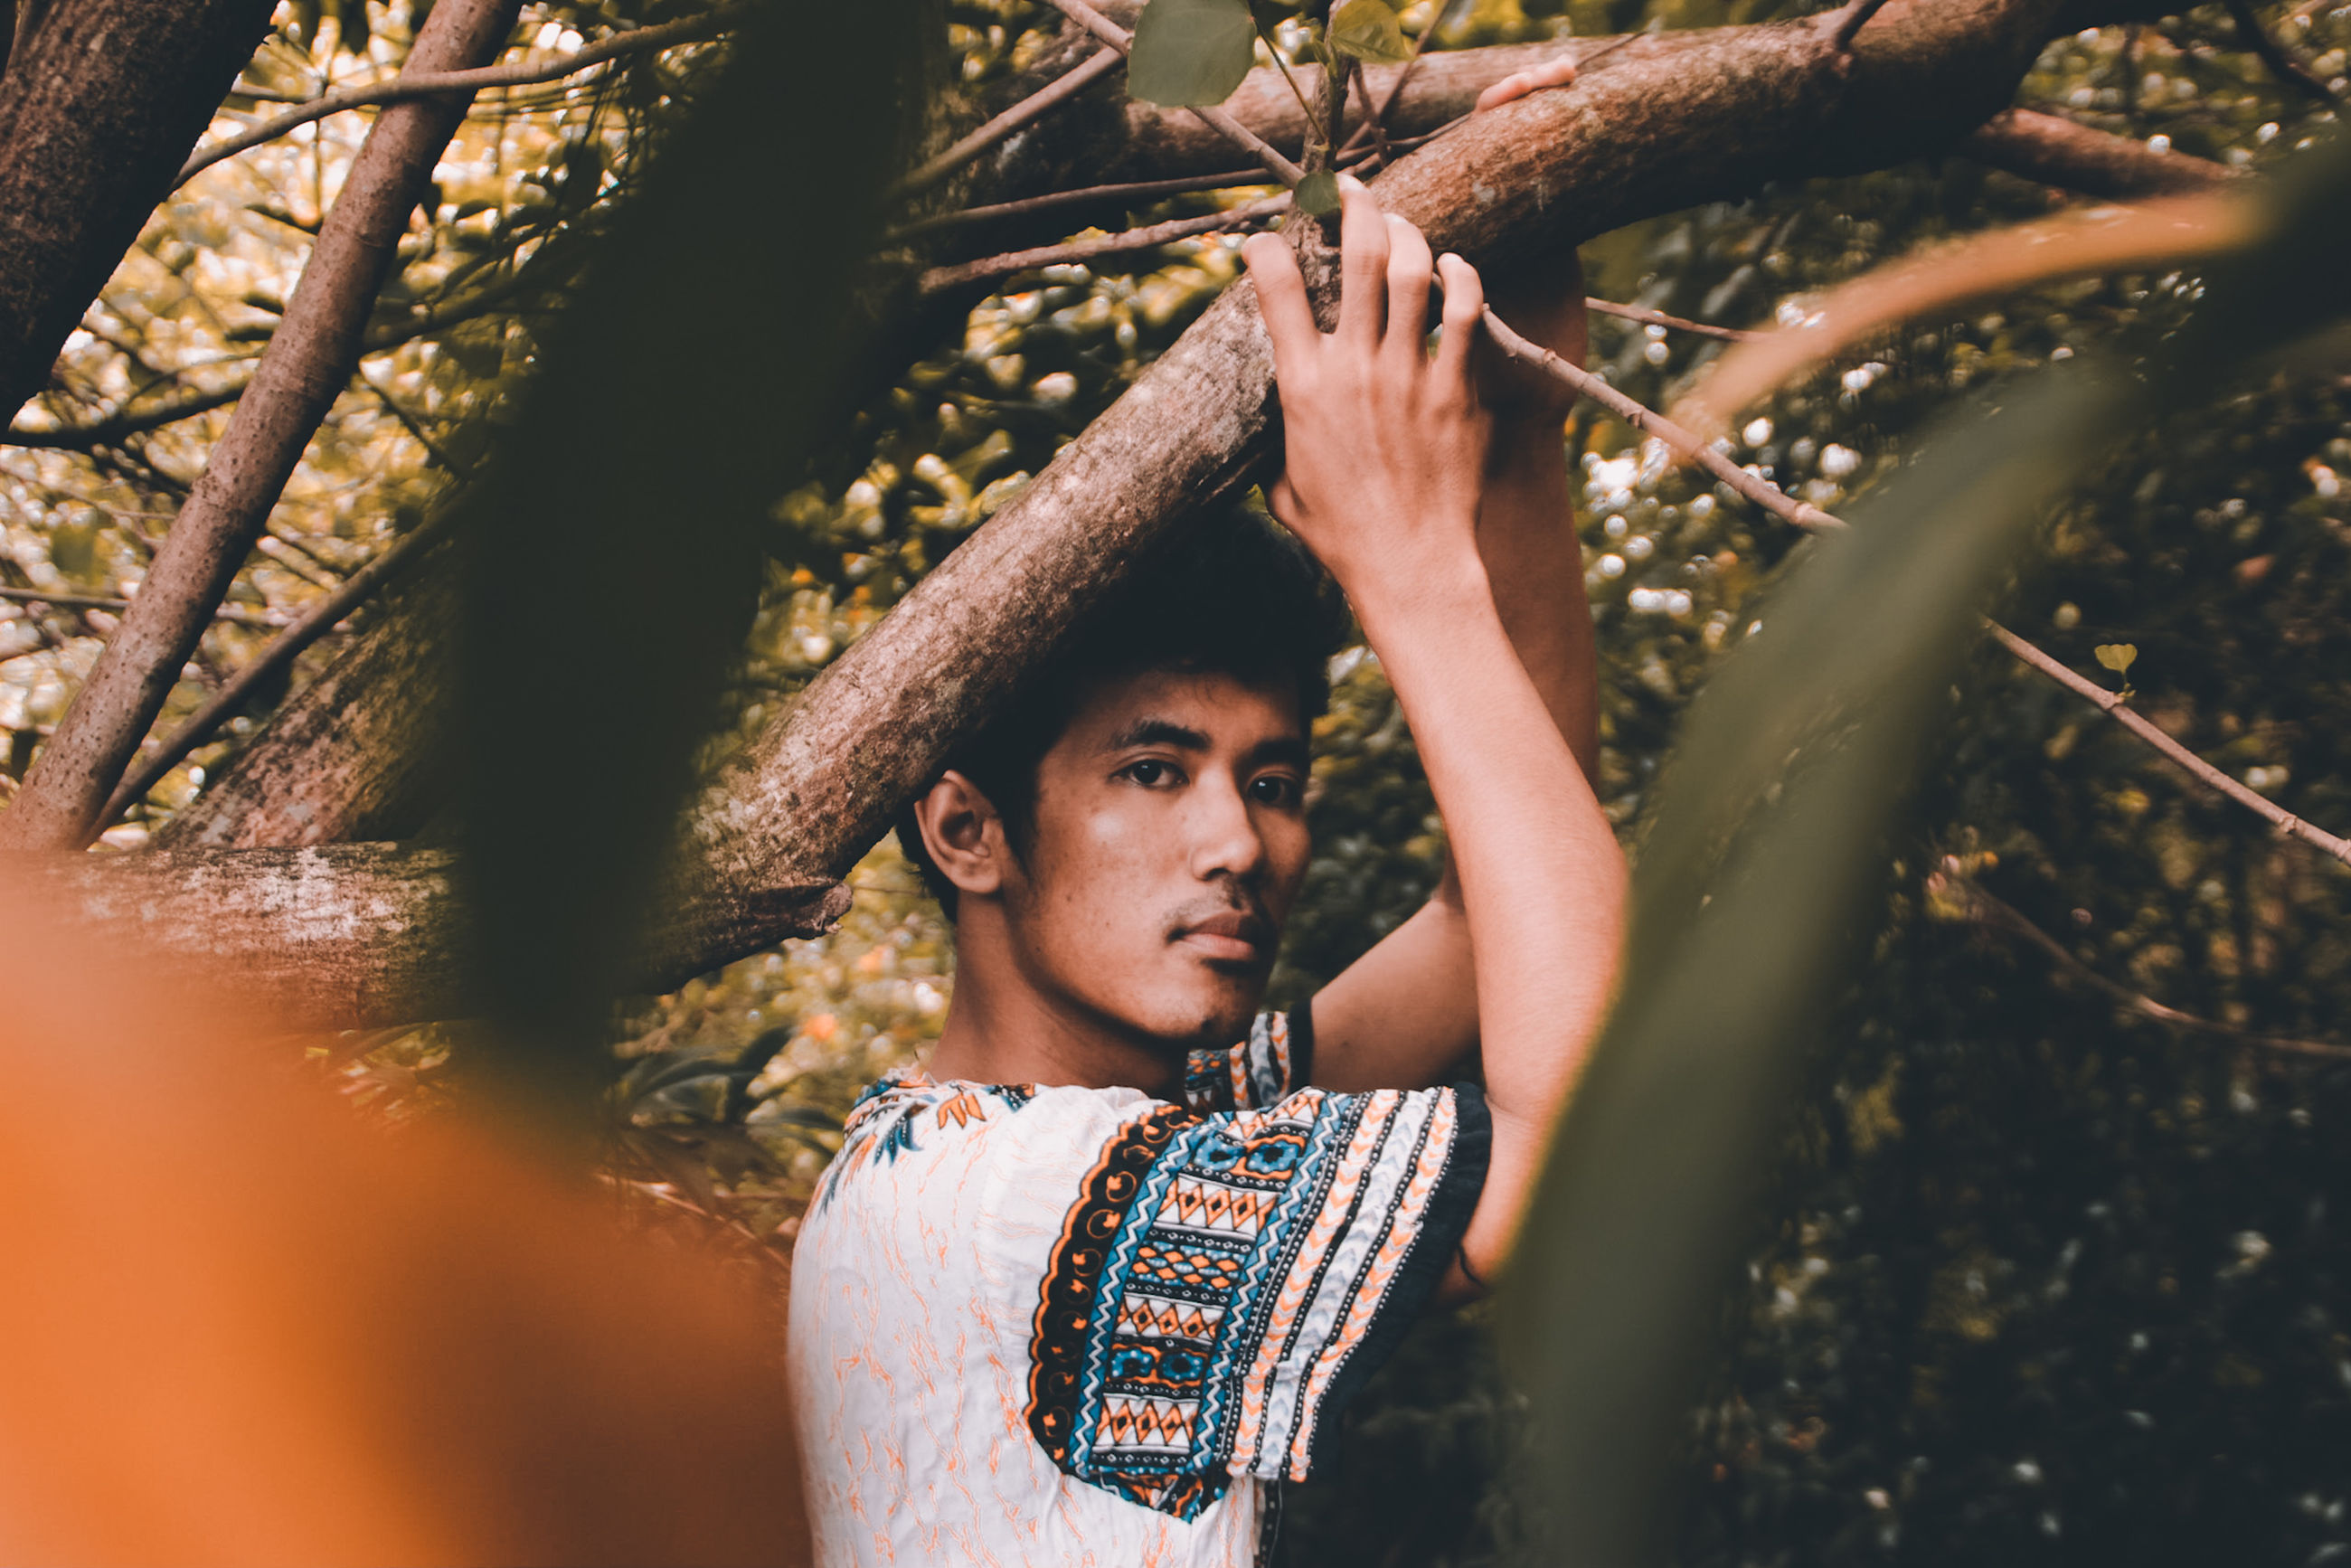 tree, real people, one person, young adult, leisure activity, lifestyles, plant, looking, day, waist up, front view, young men, casual clothing, forest, standing, nature, looking away, portrait, outdoors, human arm, arms raised, hairstyle